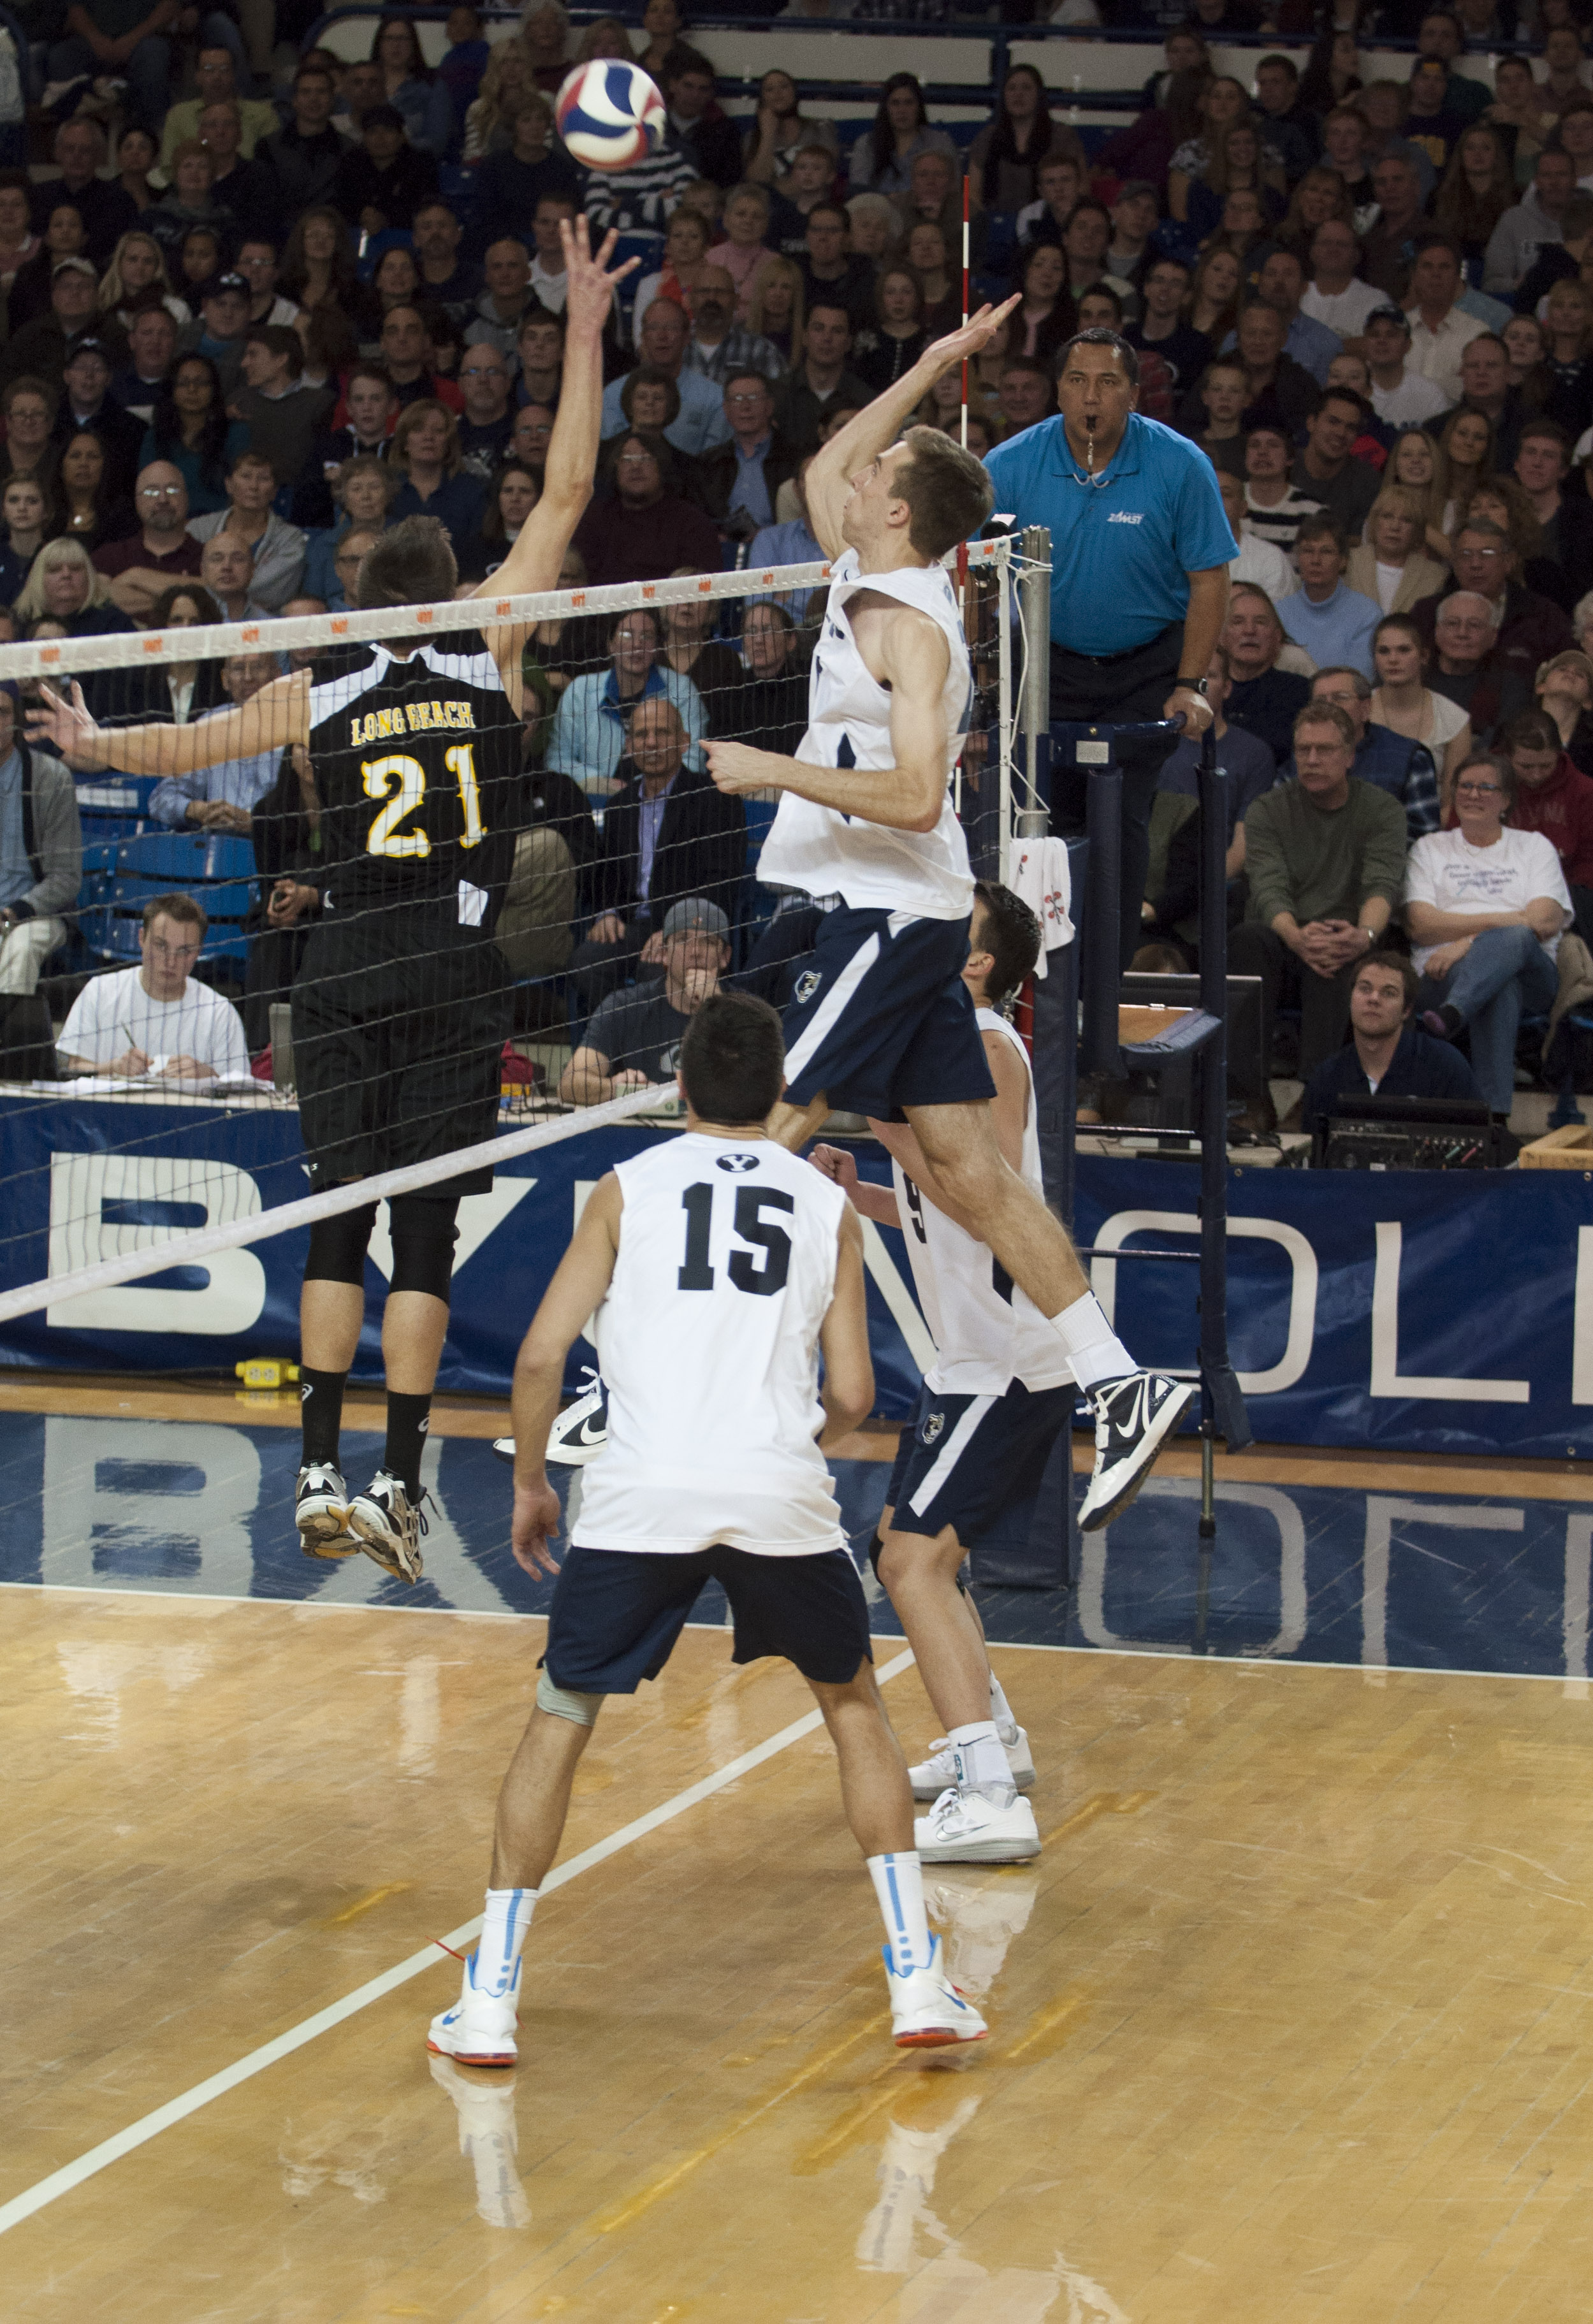 Devin Young goes for a kill in a home game earlier this season. (Photo by Whitnie Soelberg)